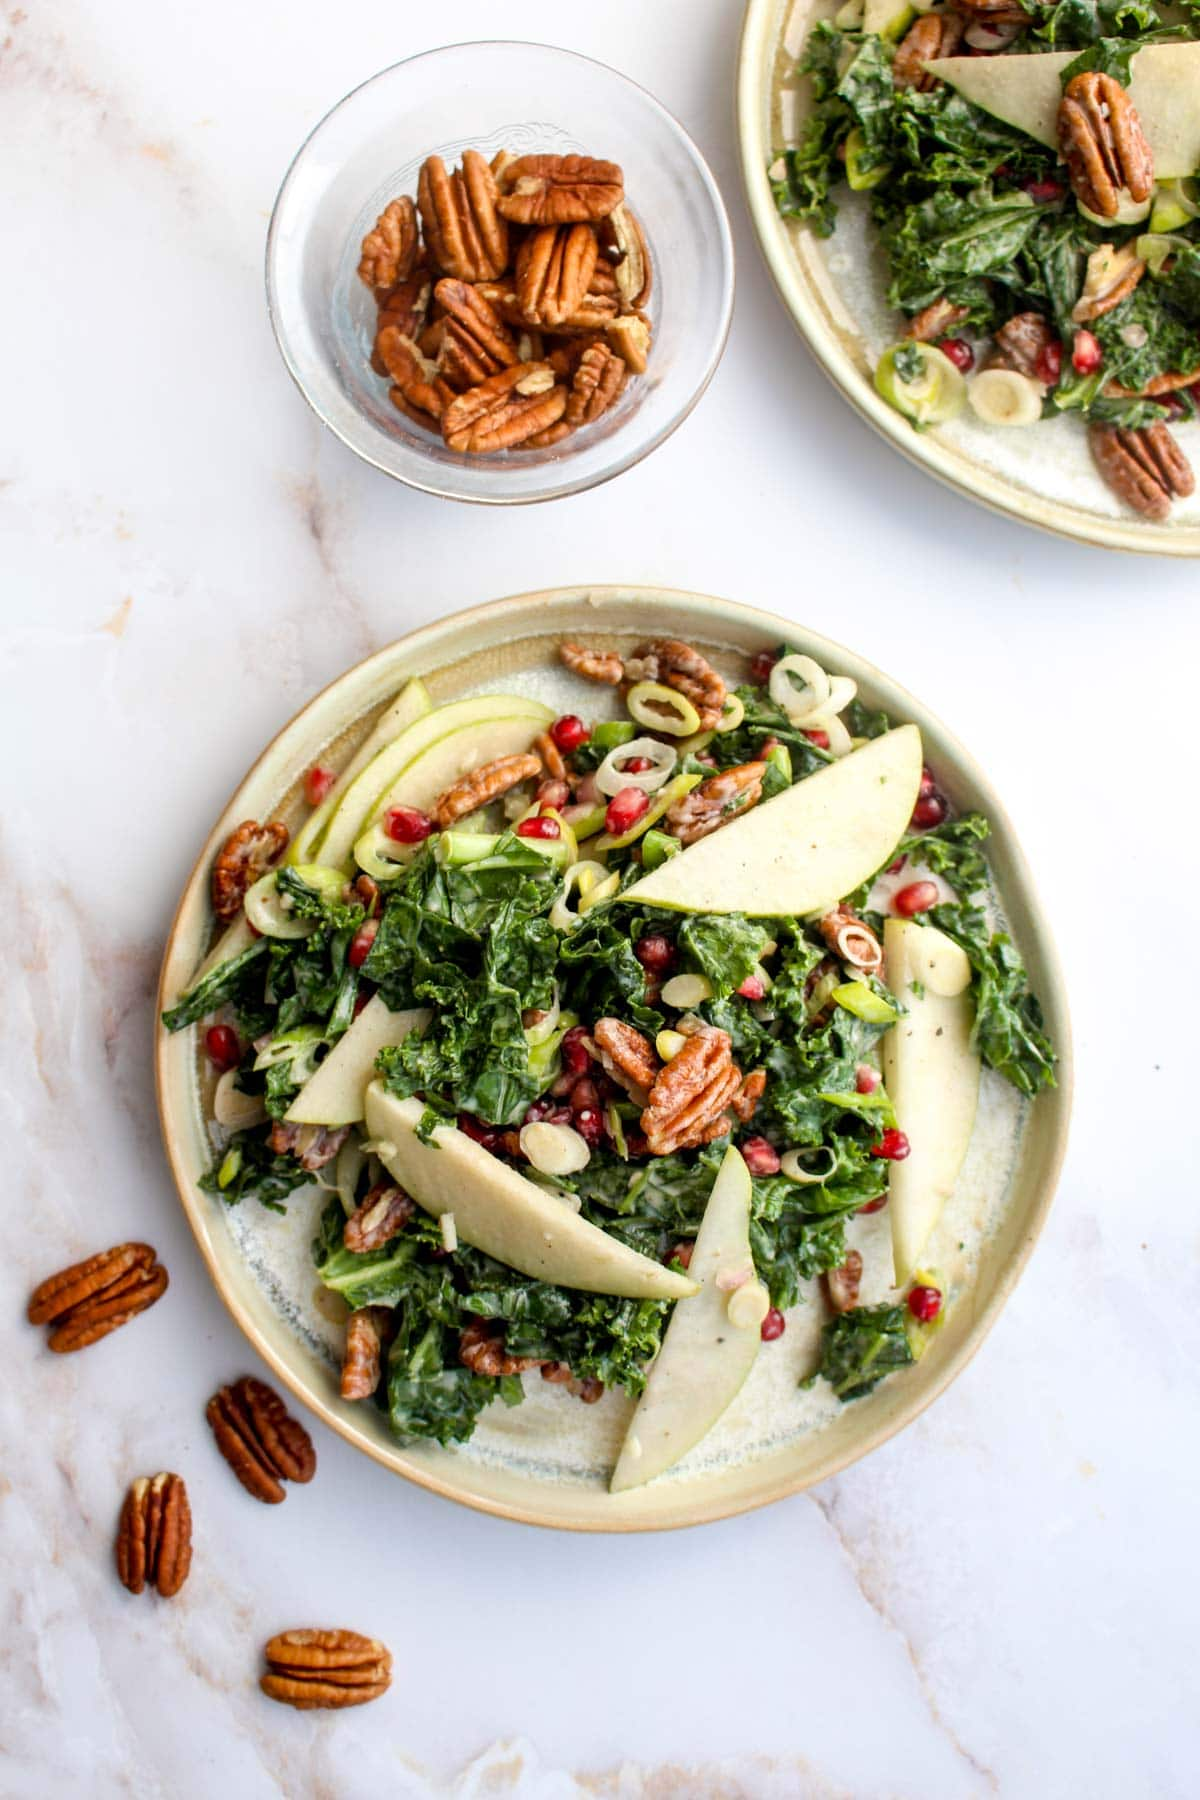 Two plates of winter kale salad with pecans, pears, and pomegranate.